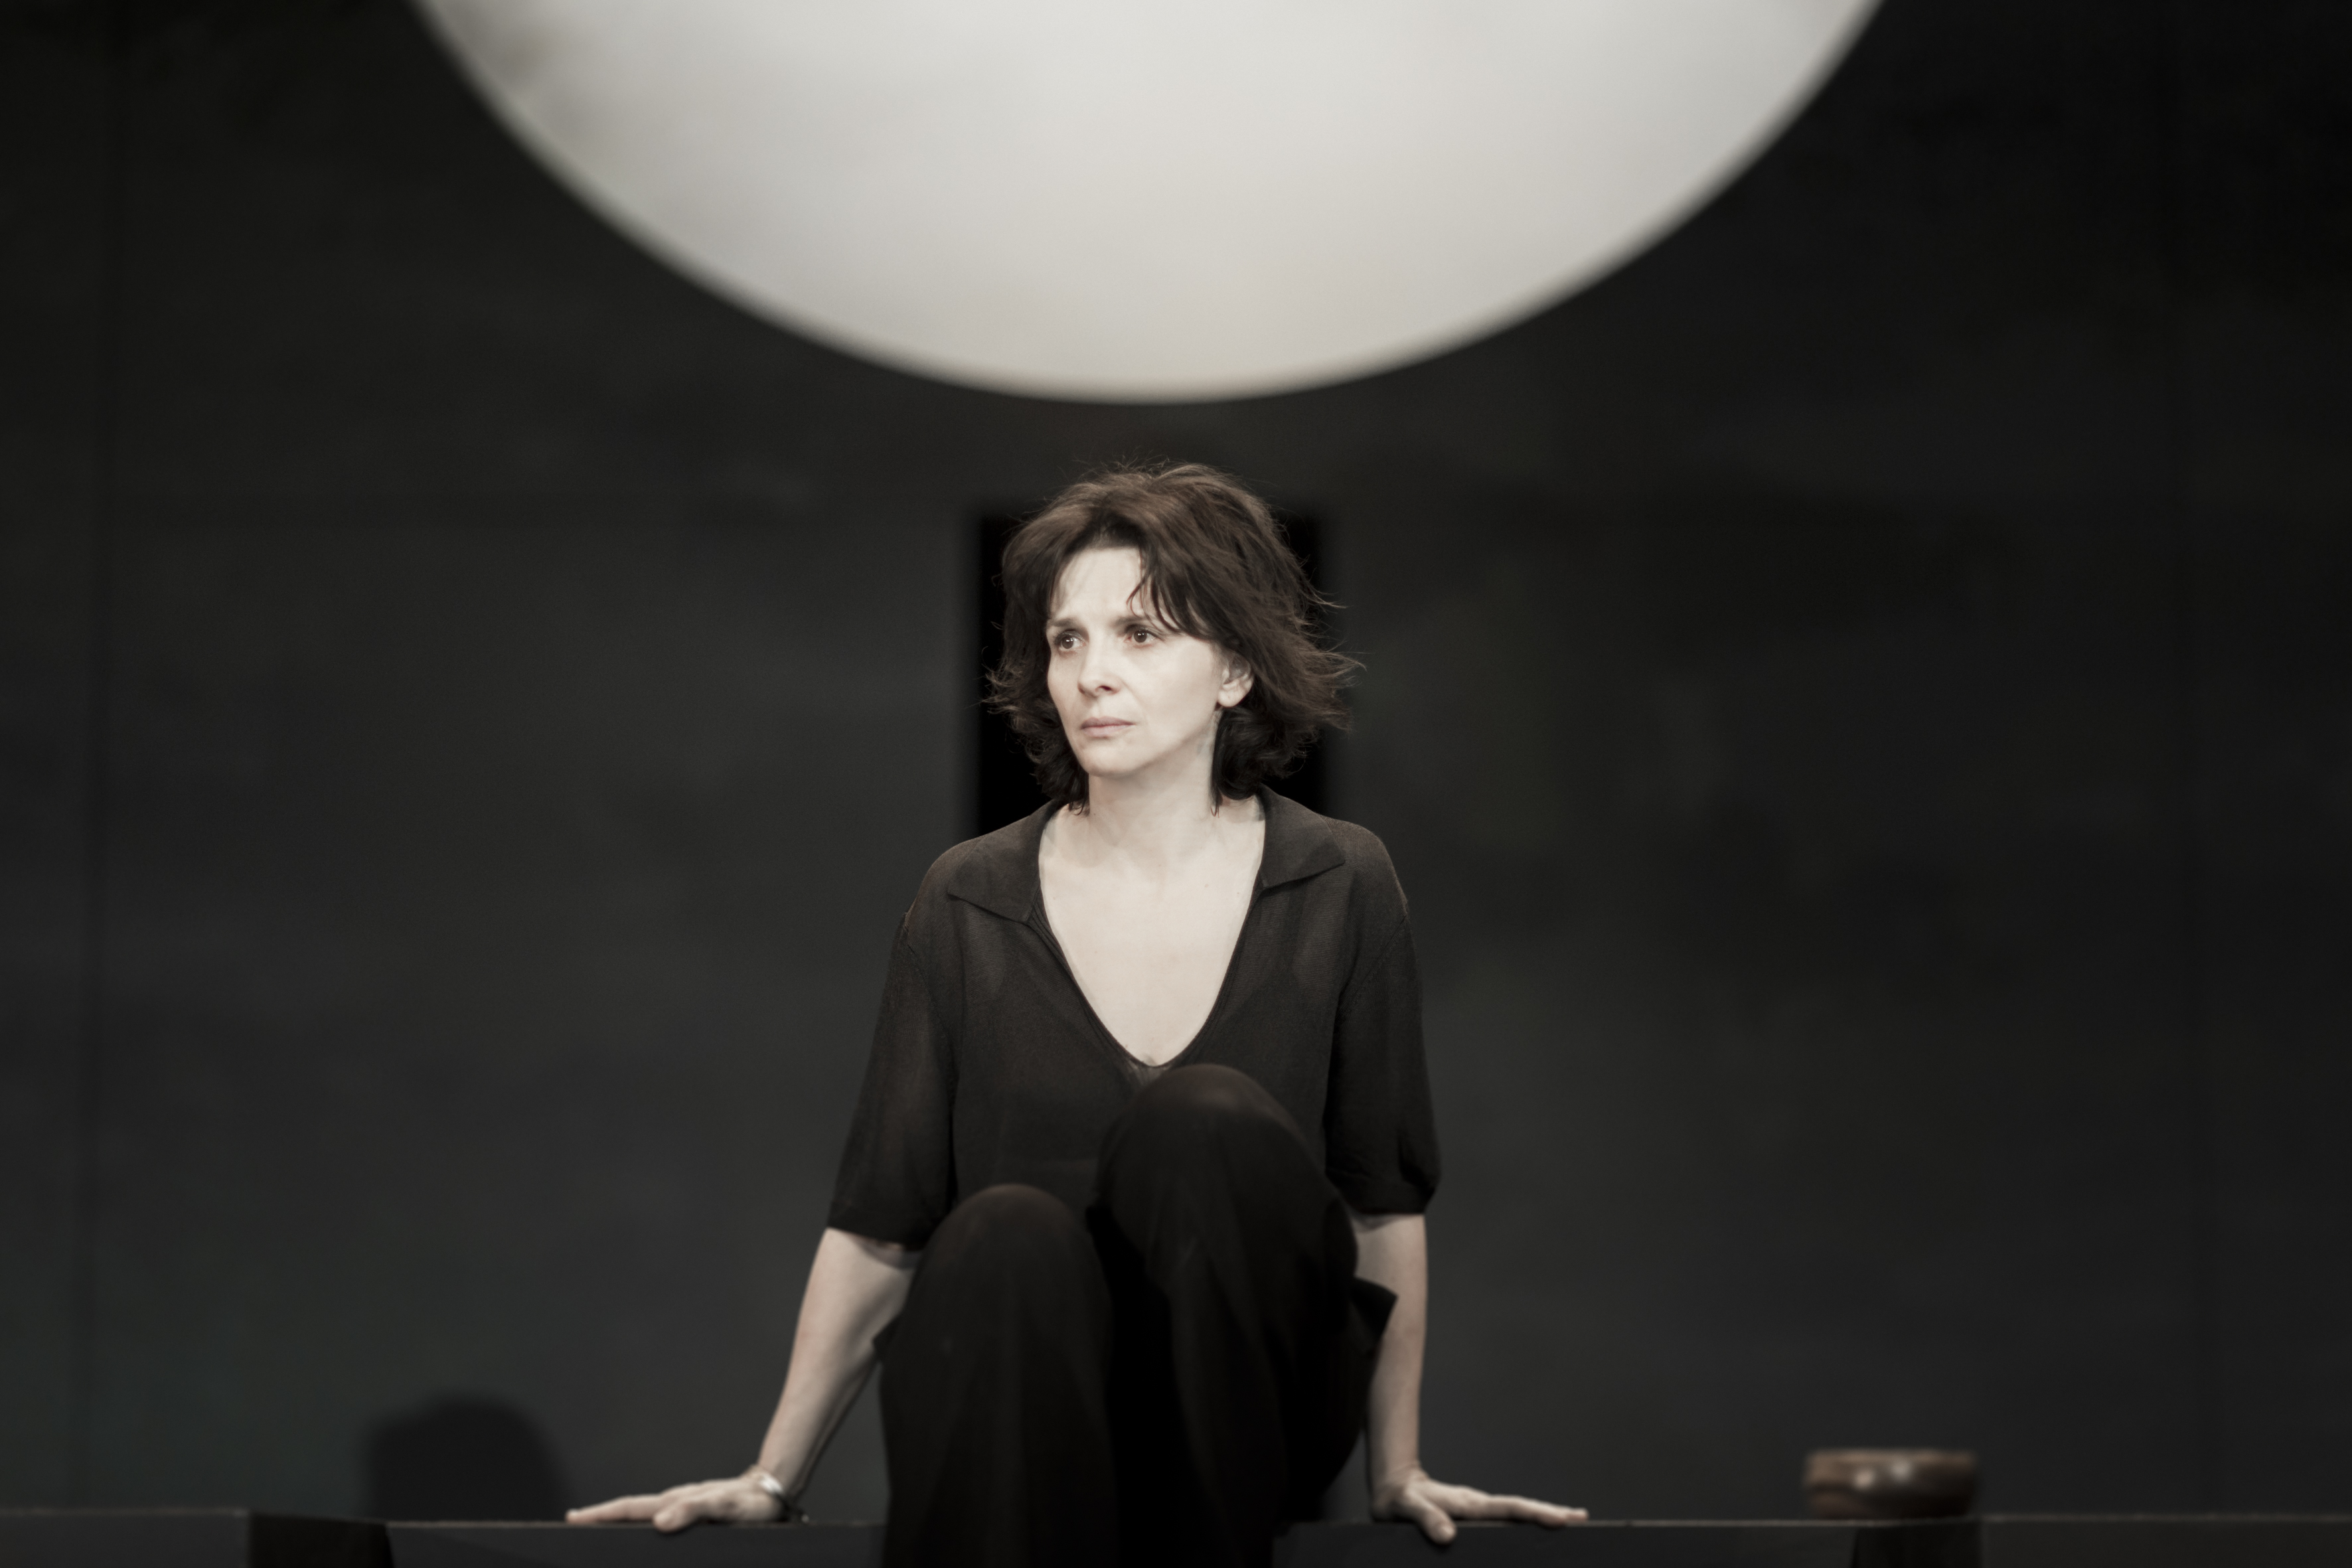 Juliette Binoche in Antigone.